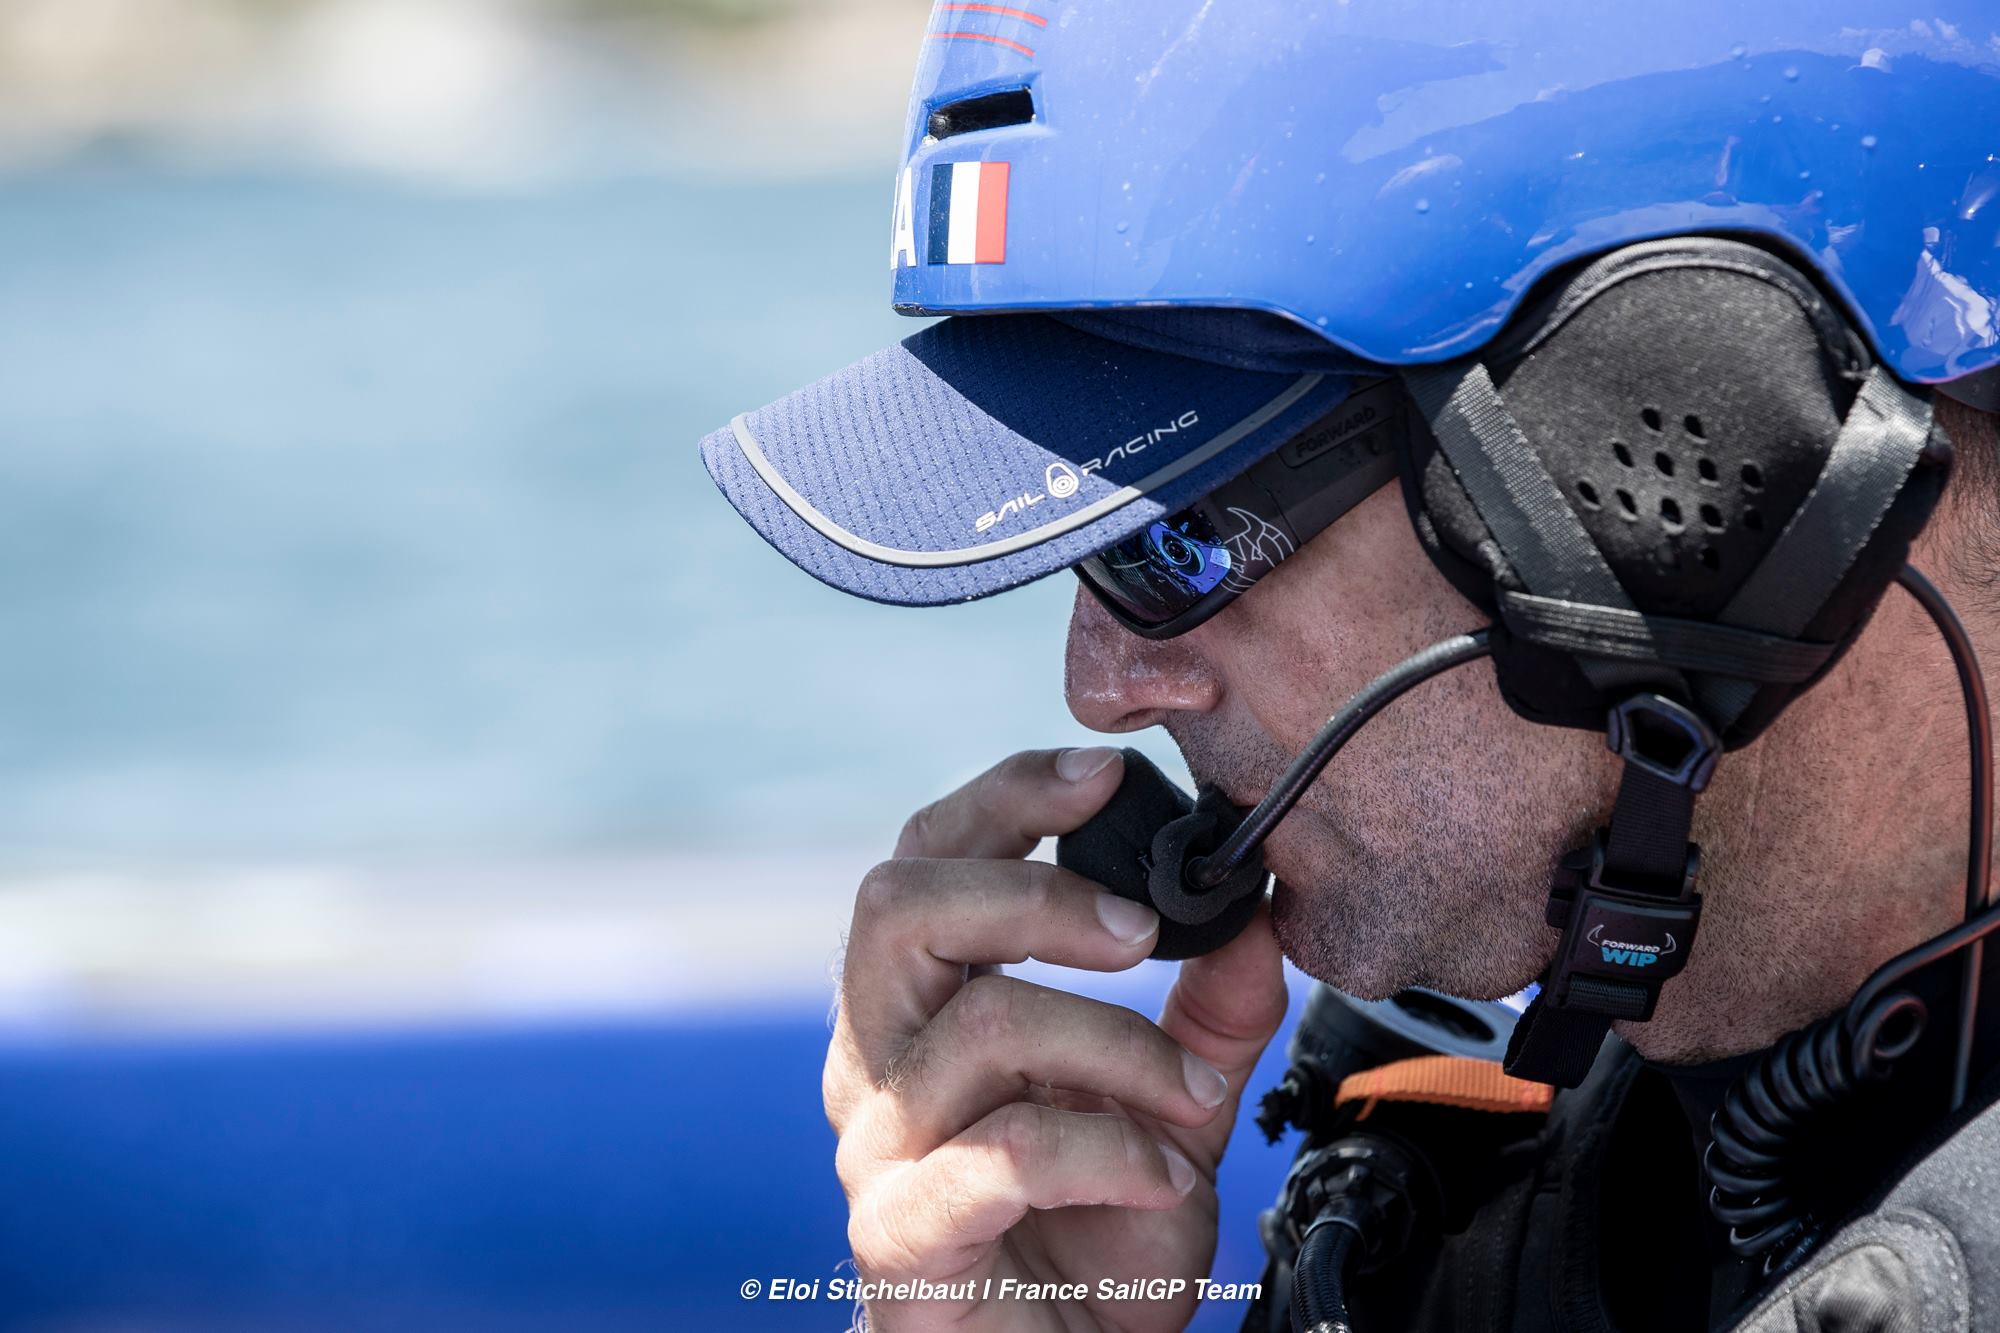 France SailGP team Big Blue headset in use